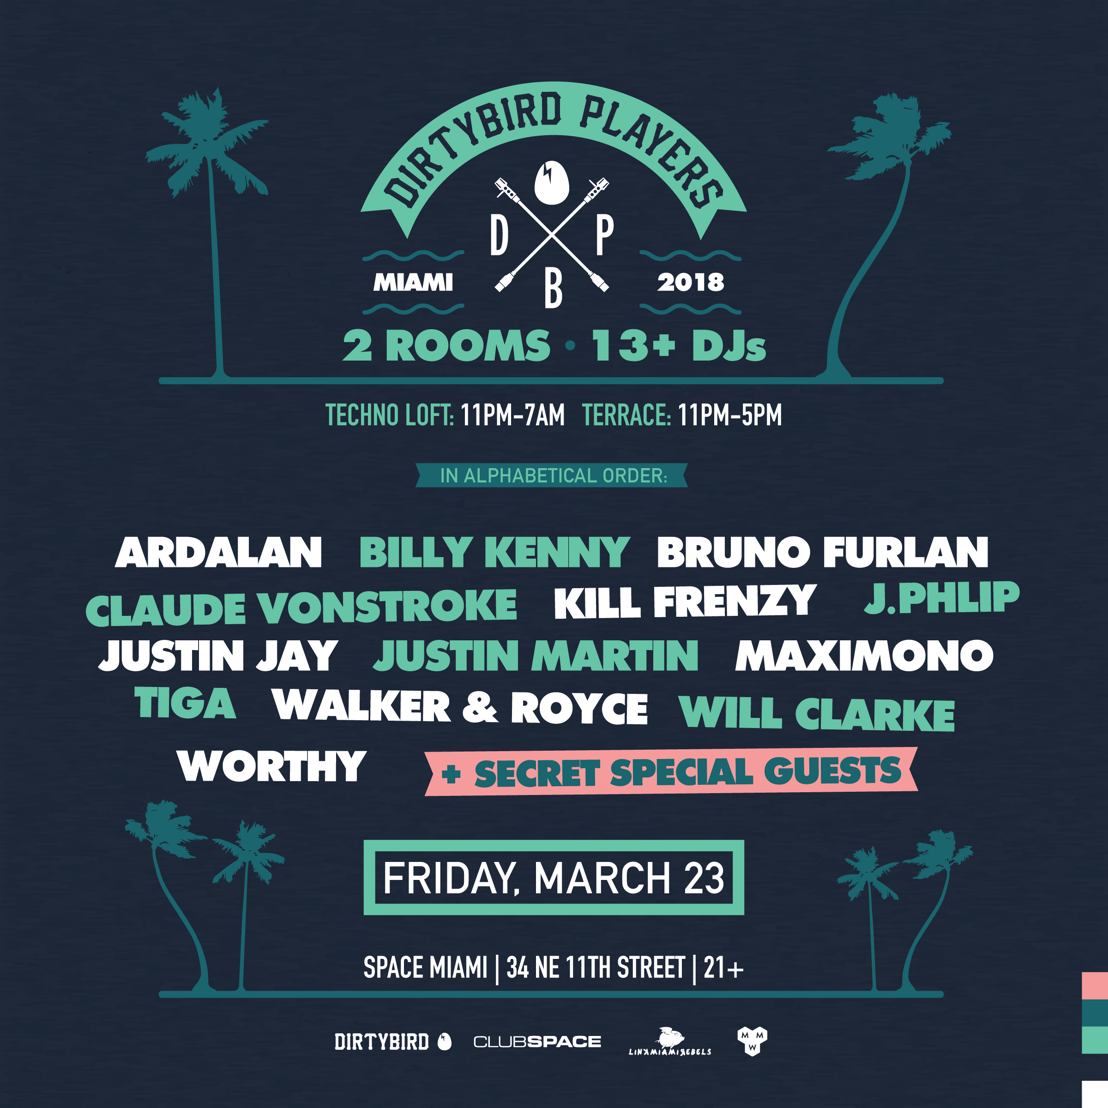 NEWS: DIRTYBIRD Players Takeover Club Space Miami w/ Claude VonStroke, Tiga, Justin Martin, Walker & Royce, et al.